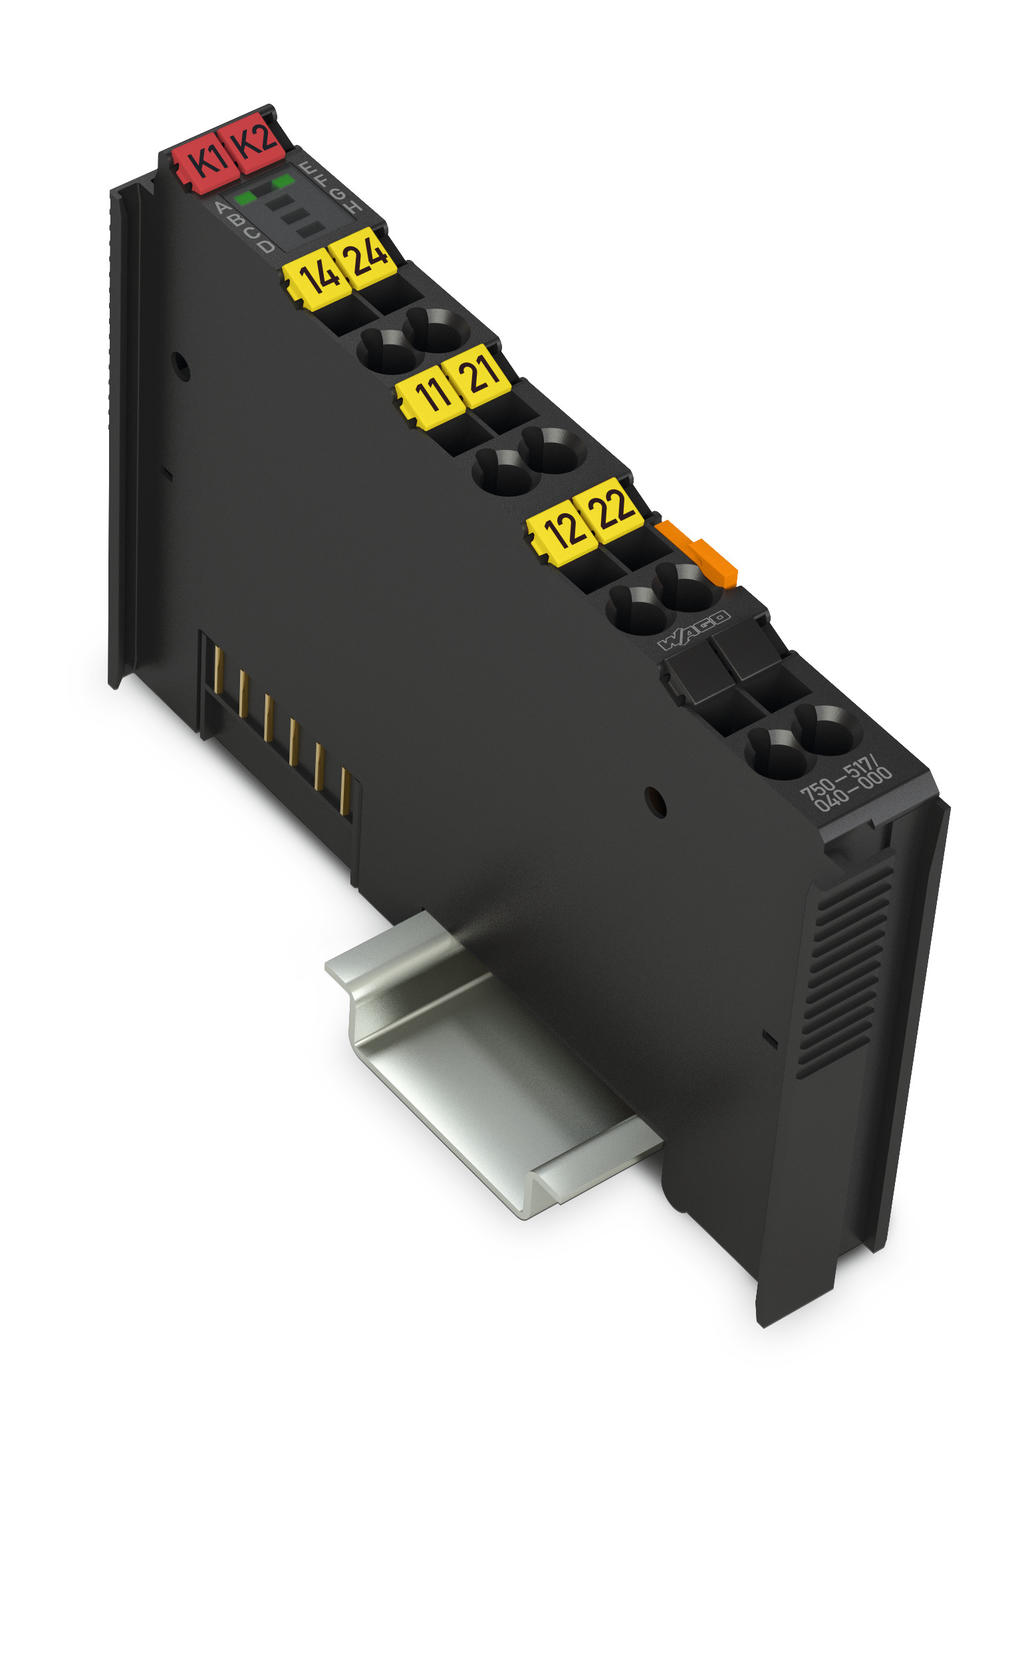 Wago 2 Channel Relay Output 750 517 040 000 Electric Device Ac 250 V 1 A Changeover Contacts Extreme